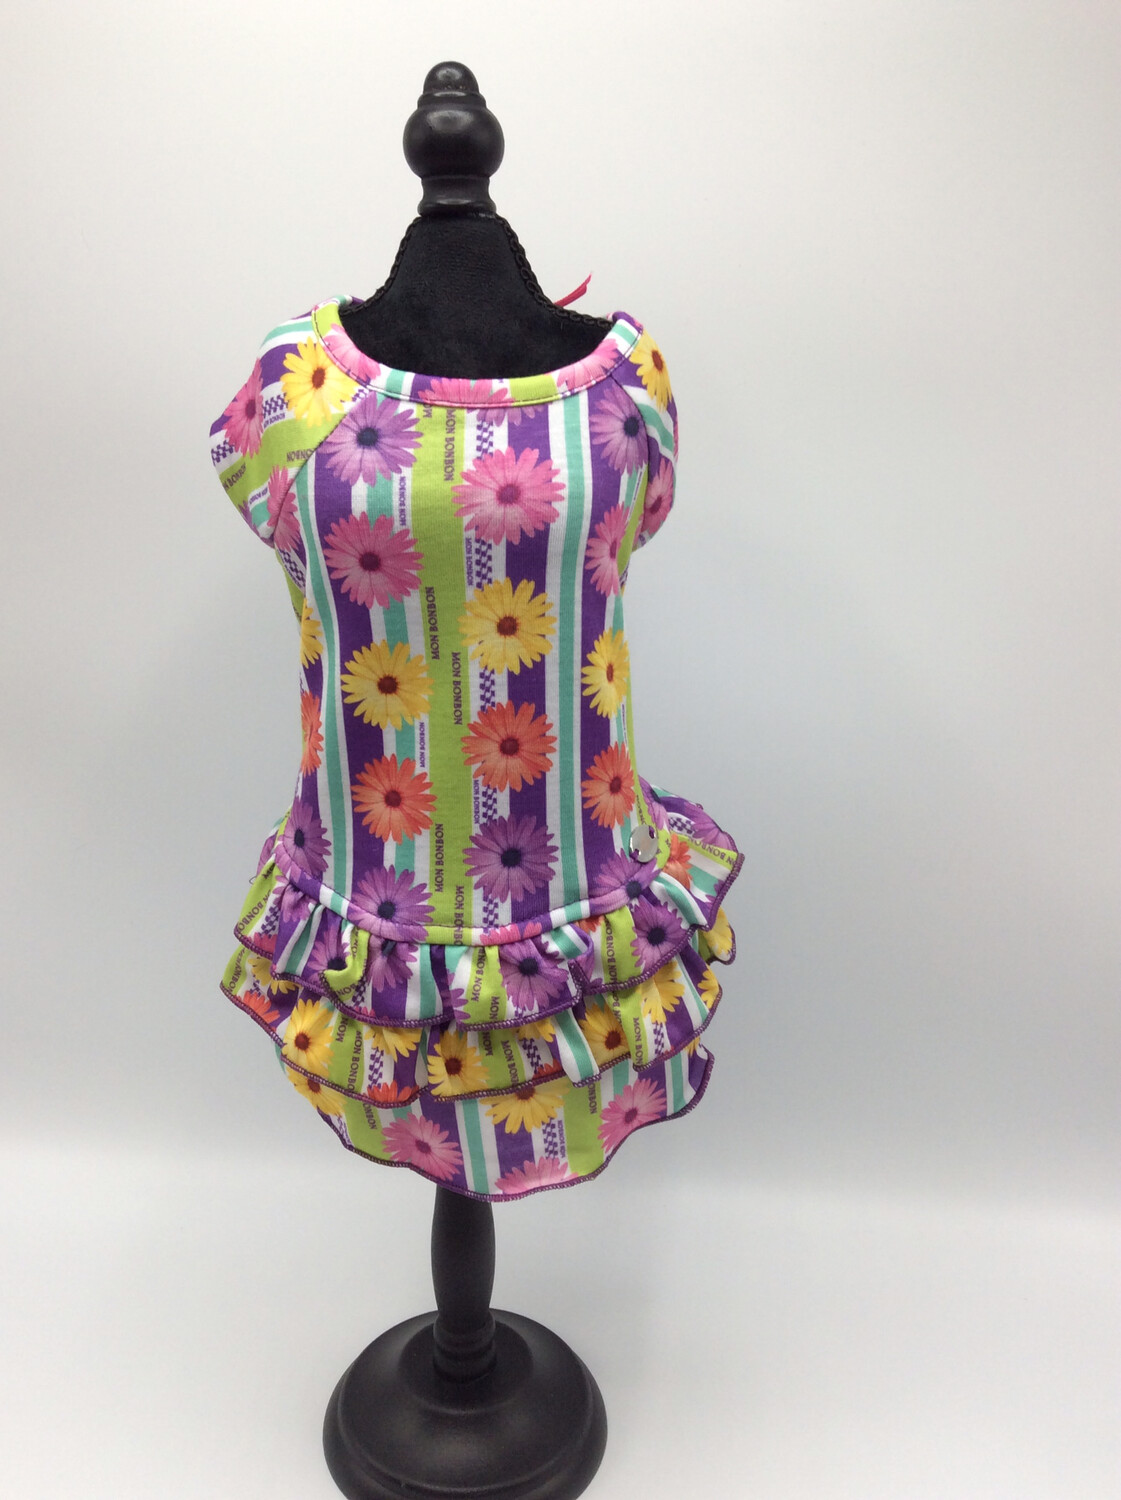 Limited edition dress